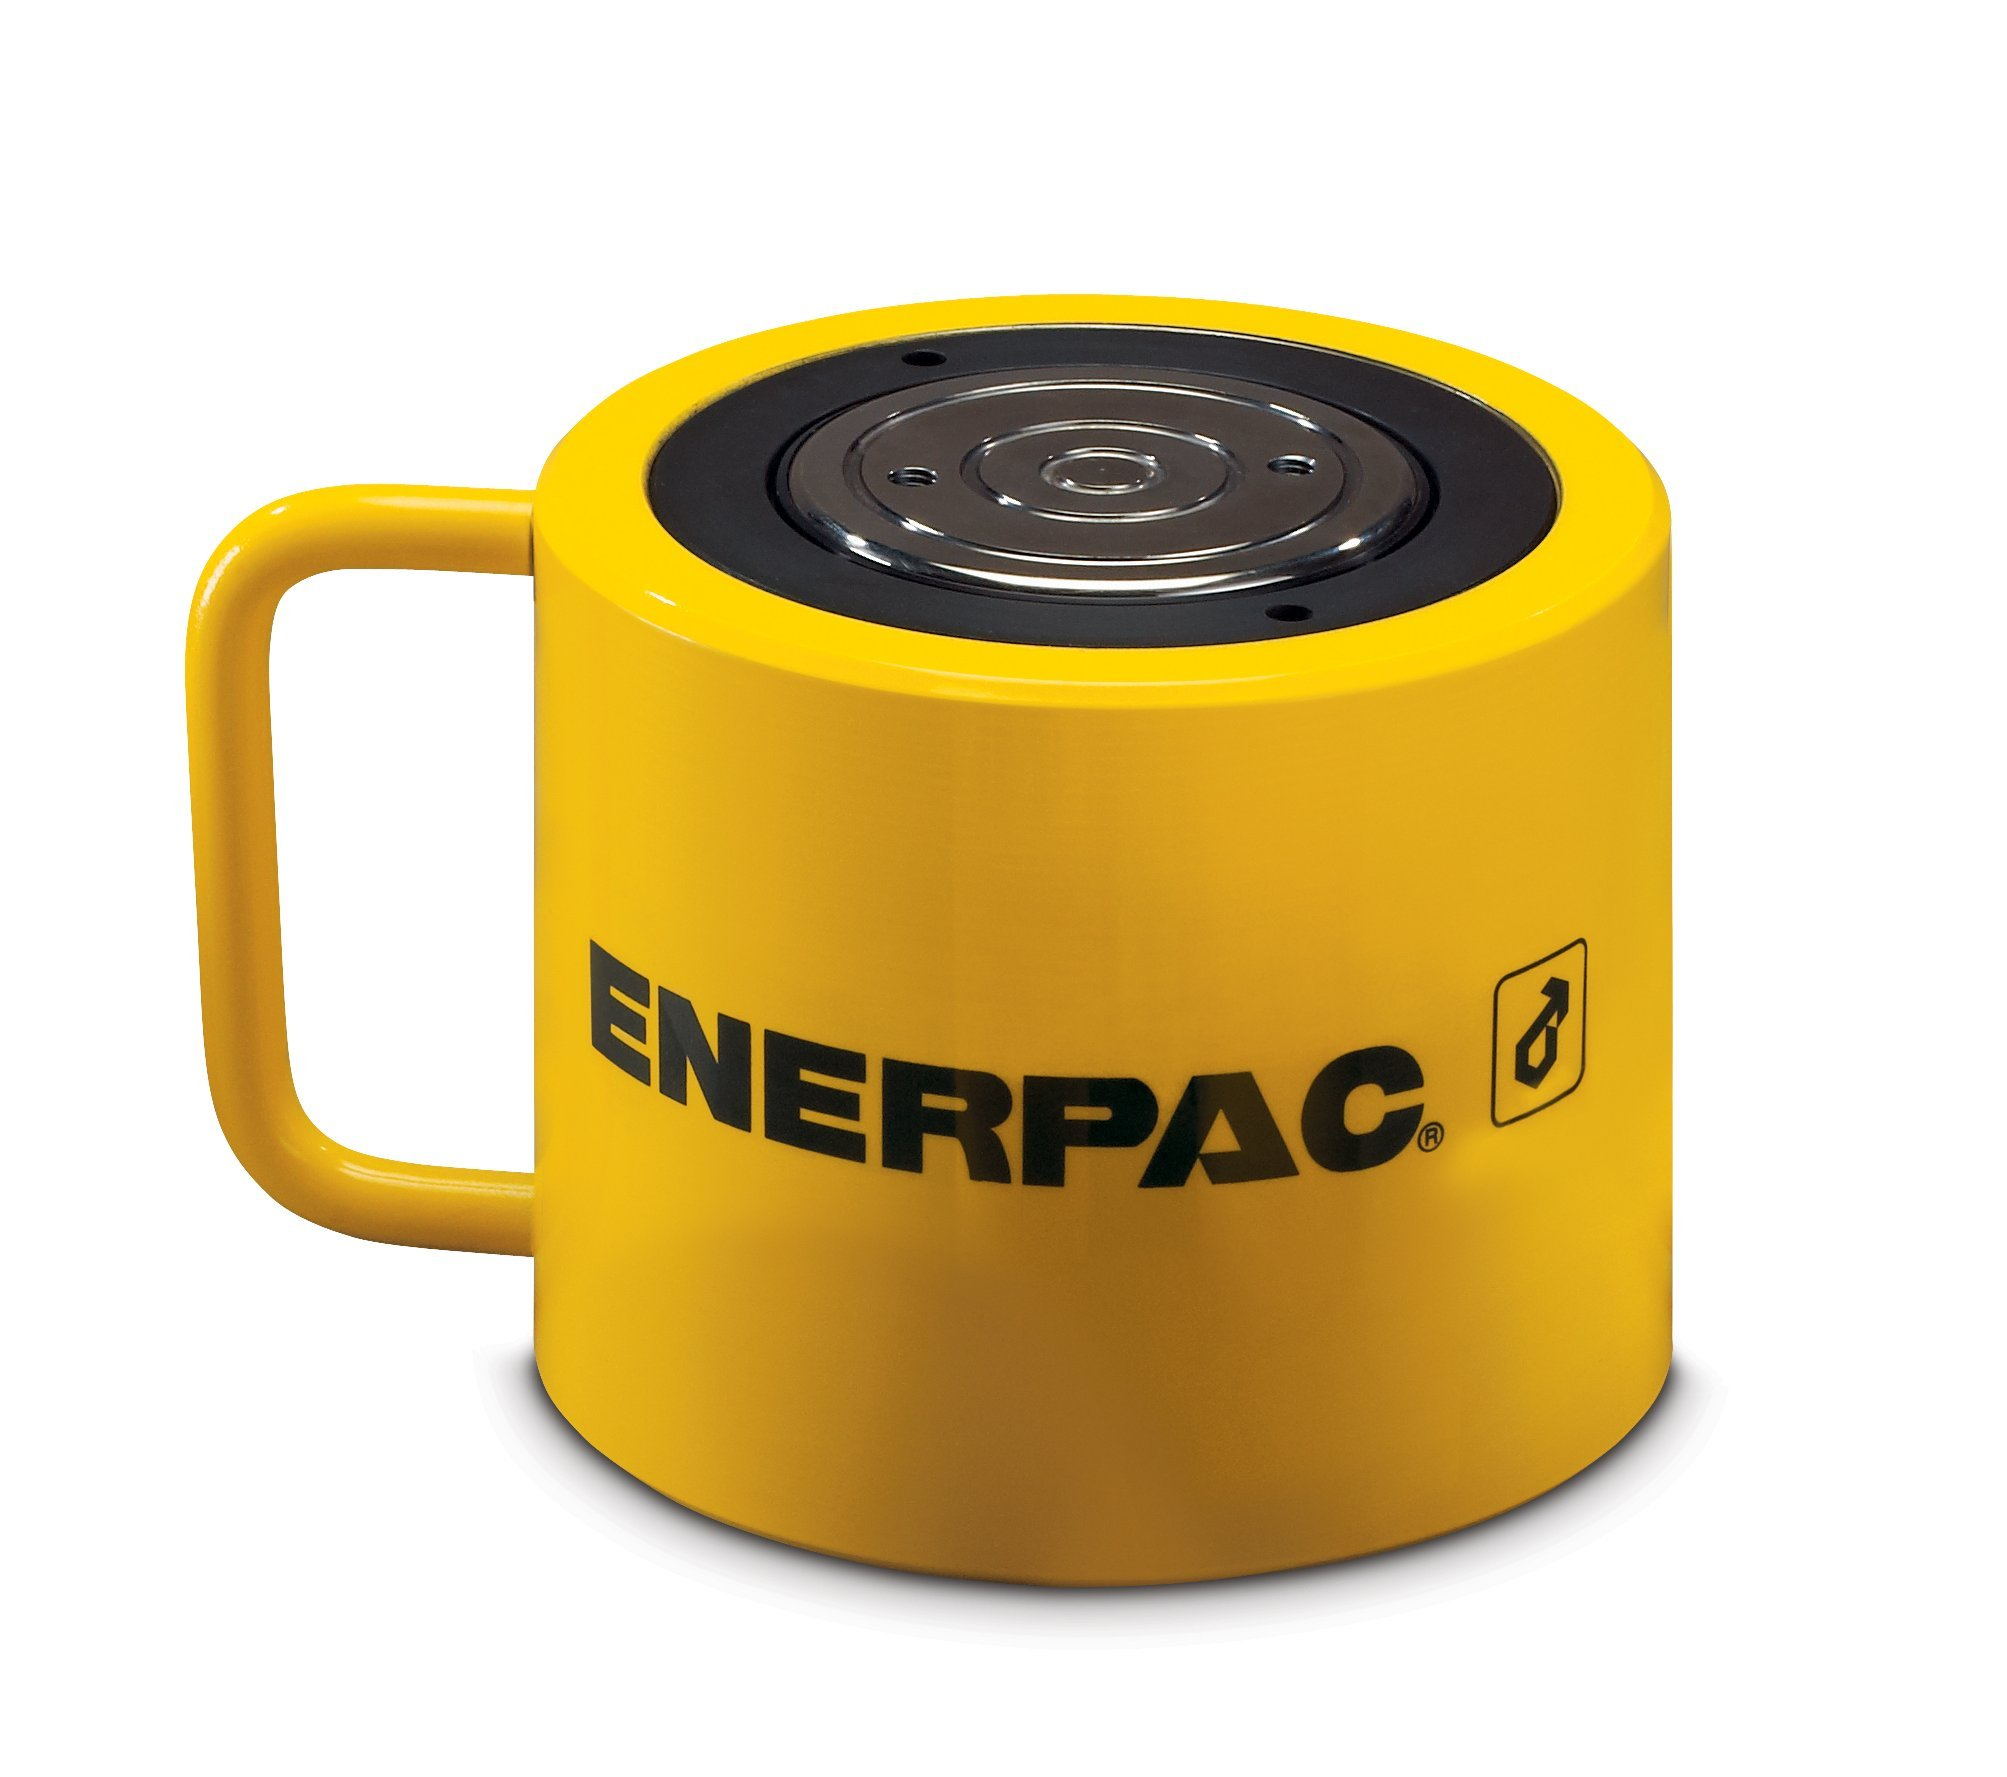 Enerpac RCS-1002 Single-Acting Low-Height Hydraulic Cylinder with 100 Ton Capacity, Single Port, 2.25'' Stroke Length by Enerpac